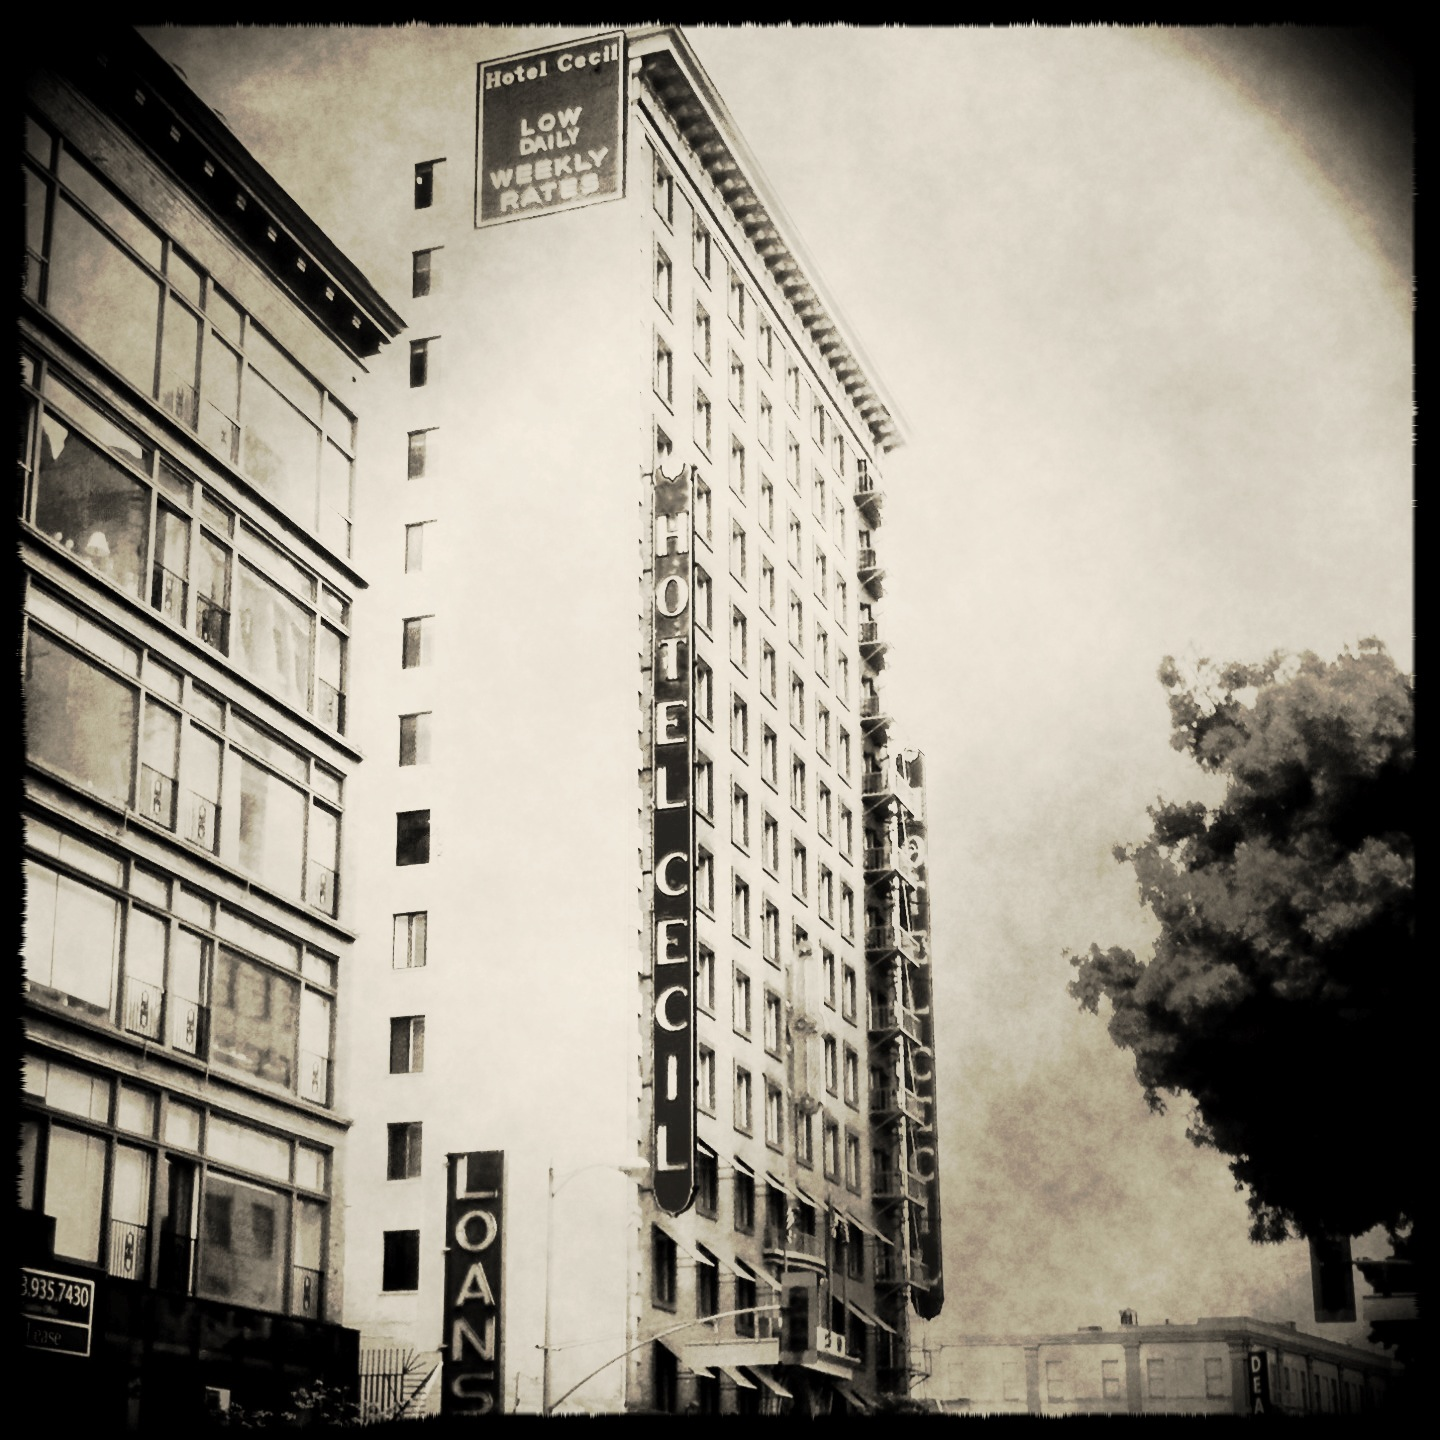 hotelcecilhistory